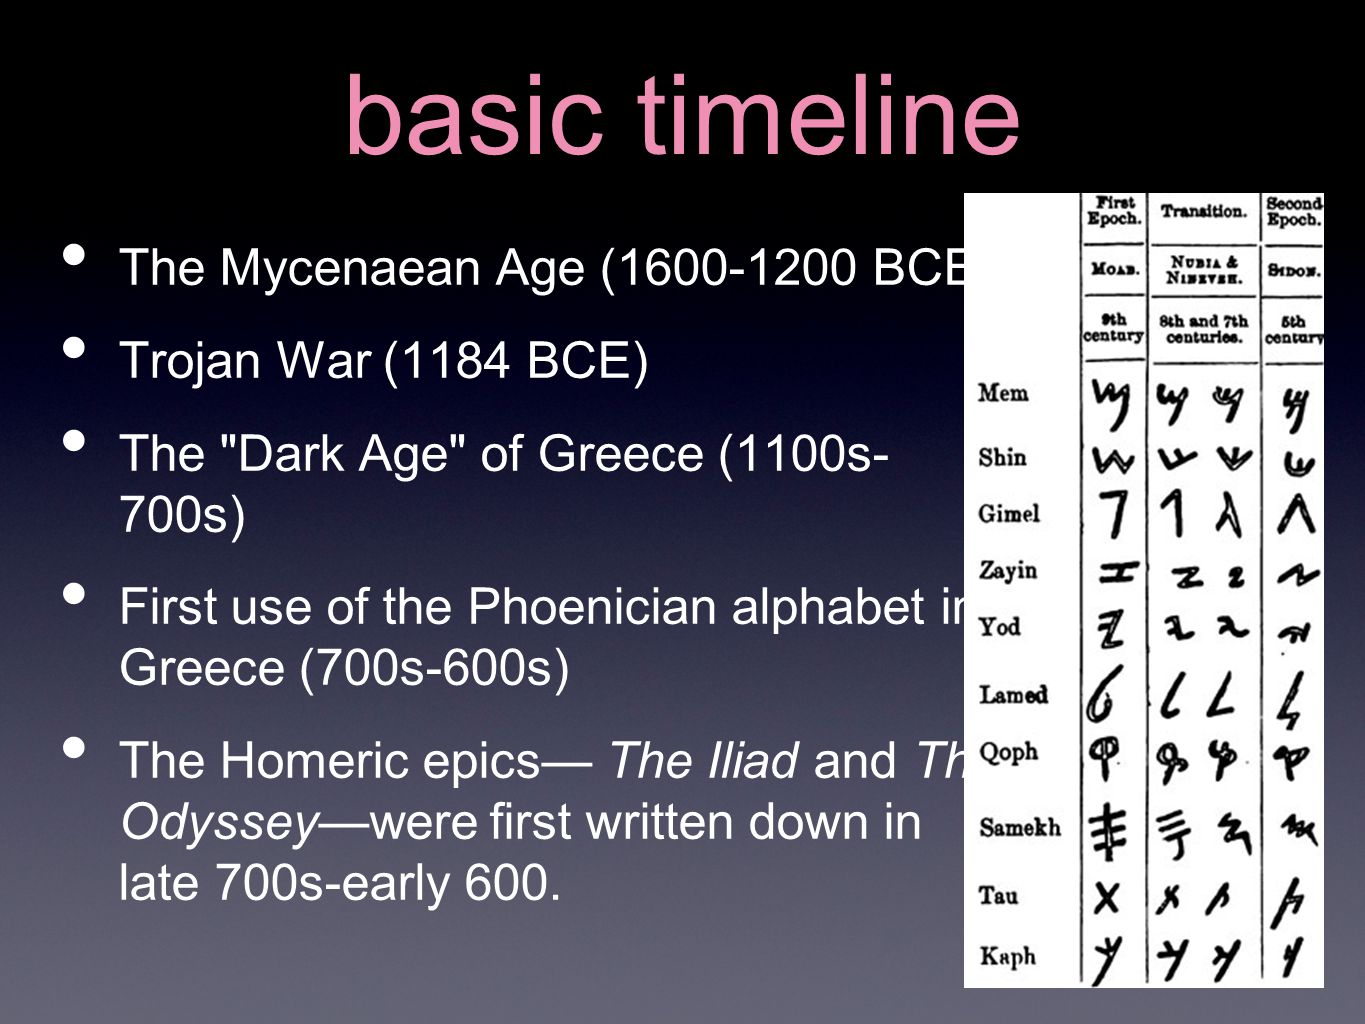 basic timeline The Mycenaean Age (1600-1200 BCE) Trojan War (1184 BCE) The Dark Age of Greece (1100s- 700s) First use of the Phoenician alphabet in Greece (700s-600s) The Homeric epics— The Iliad and The Odyssey—were first written down in late 700s-early 600.